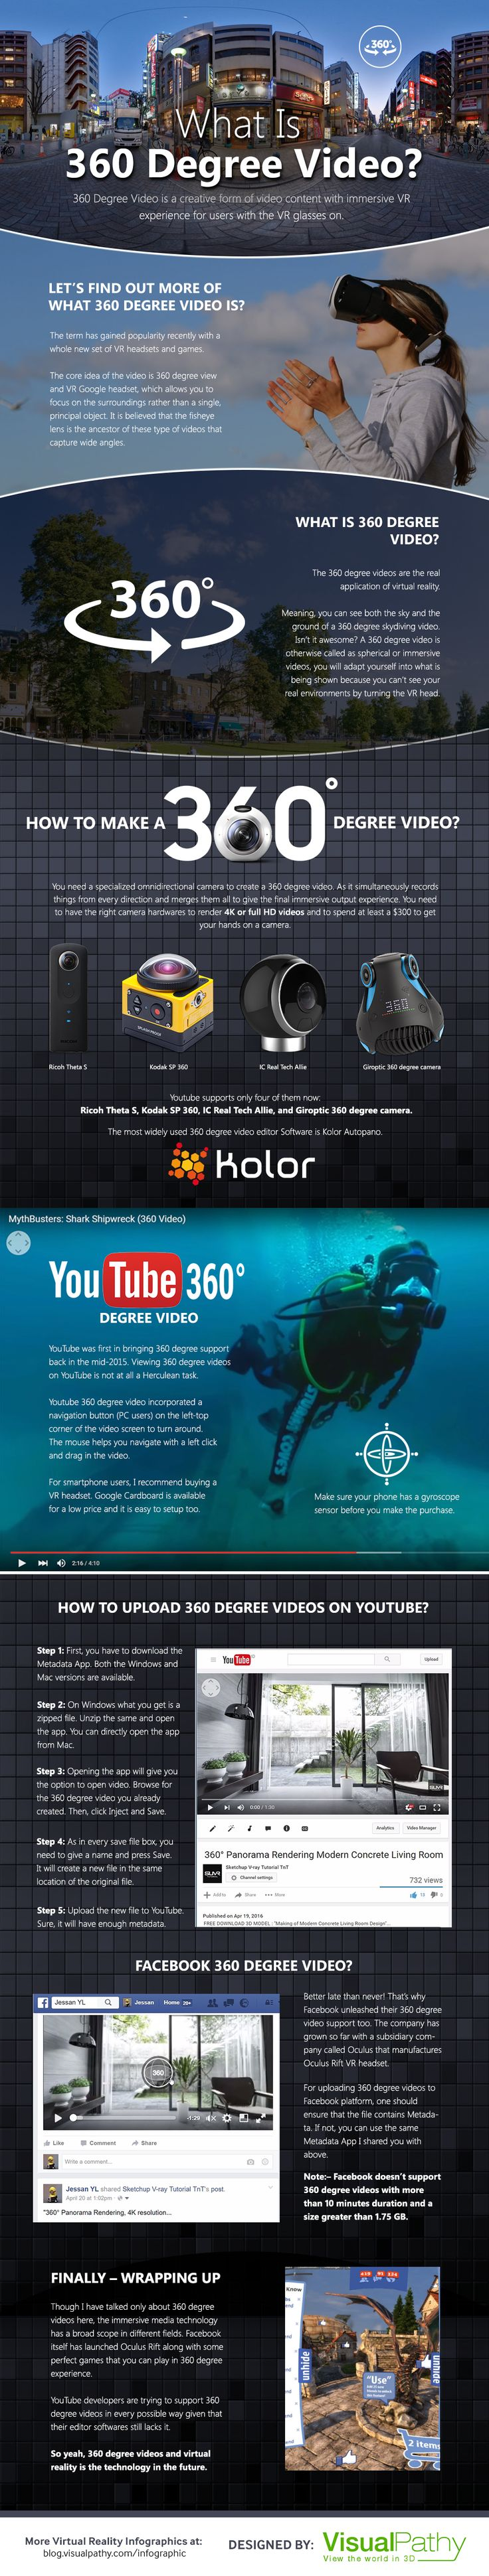 What Is 360 Degree Video? - https://blog.visualpathy.com/what-is-360-degree-video/